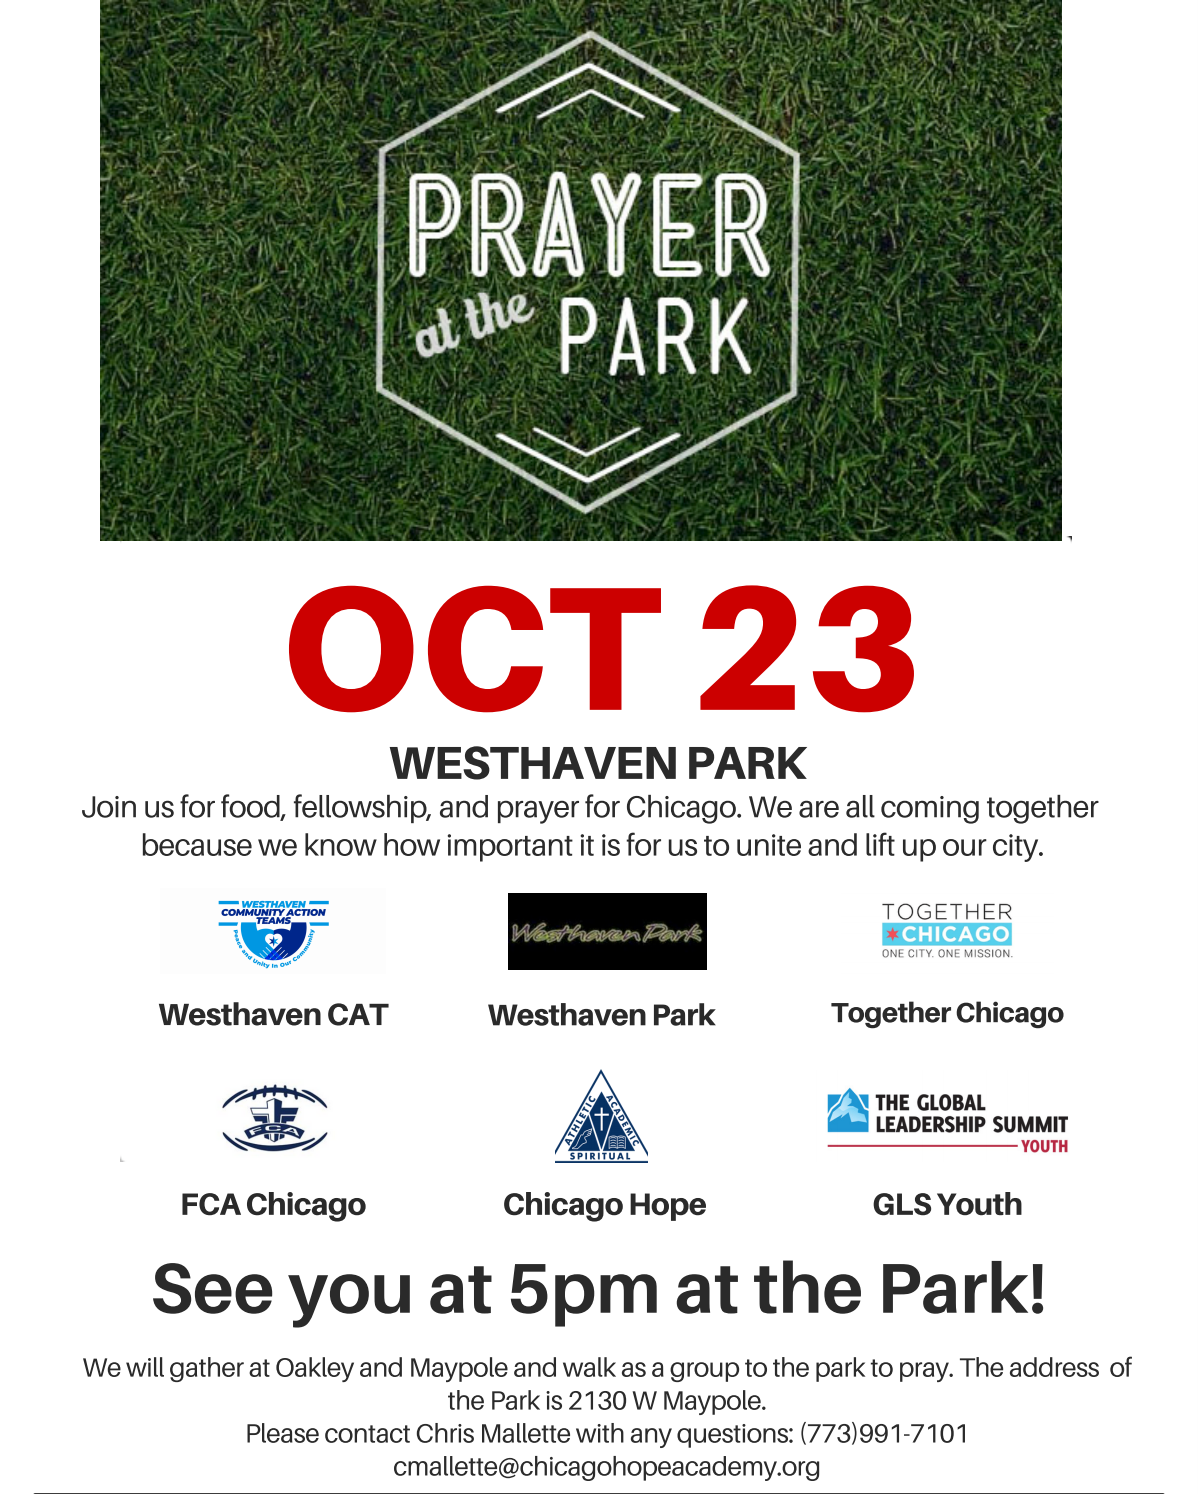 Prayer at the Park — Westhaven Park